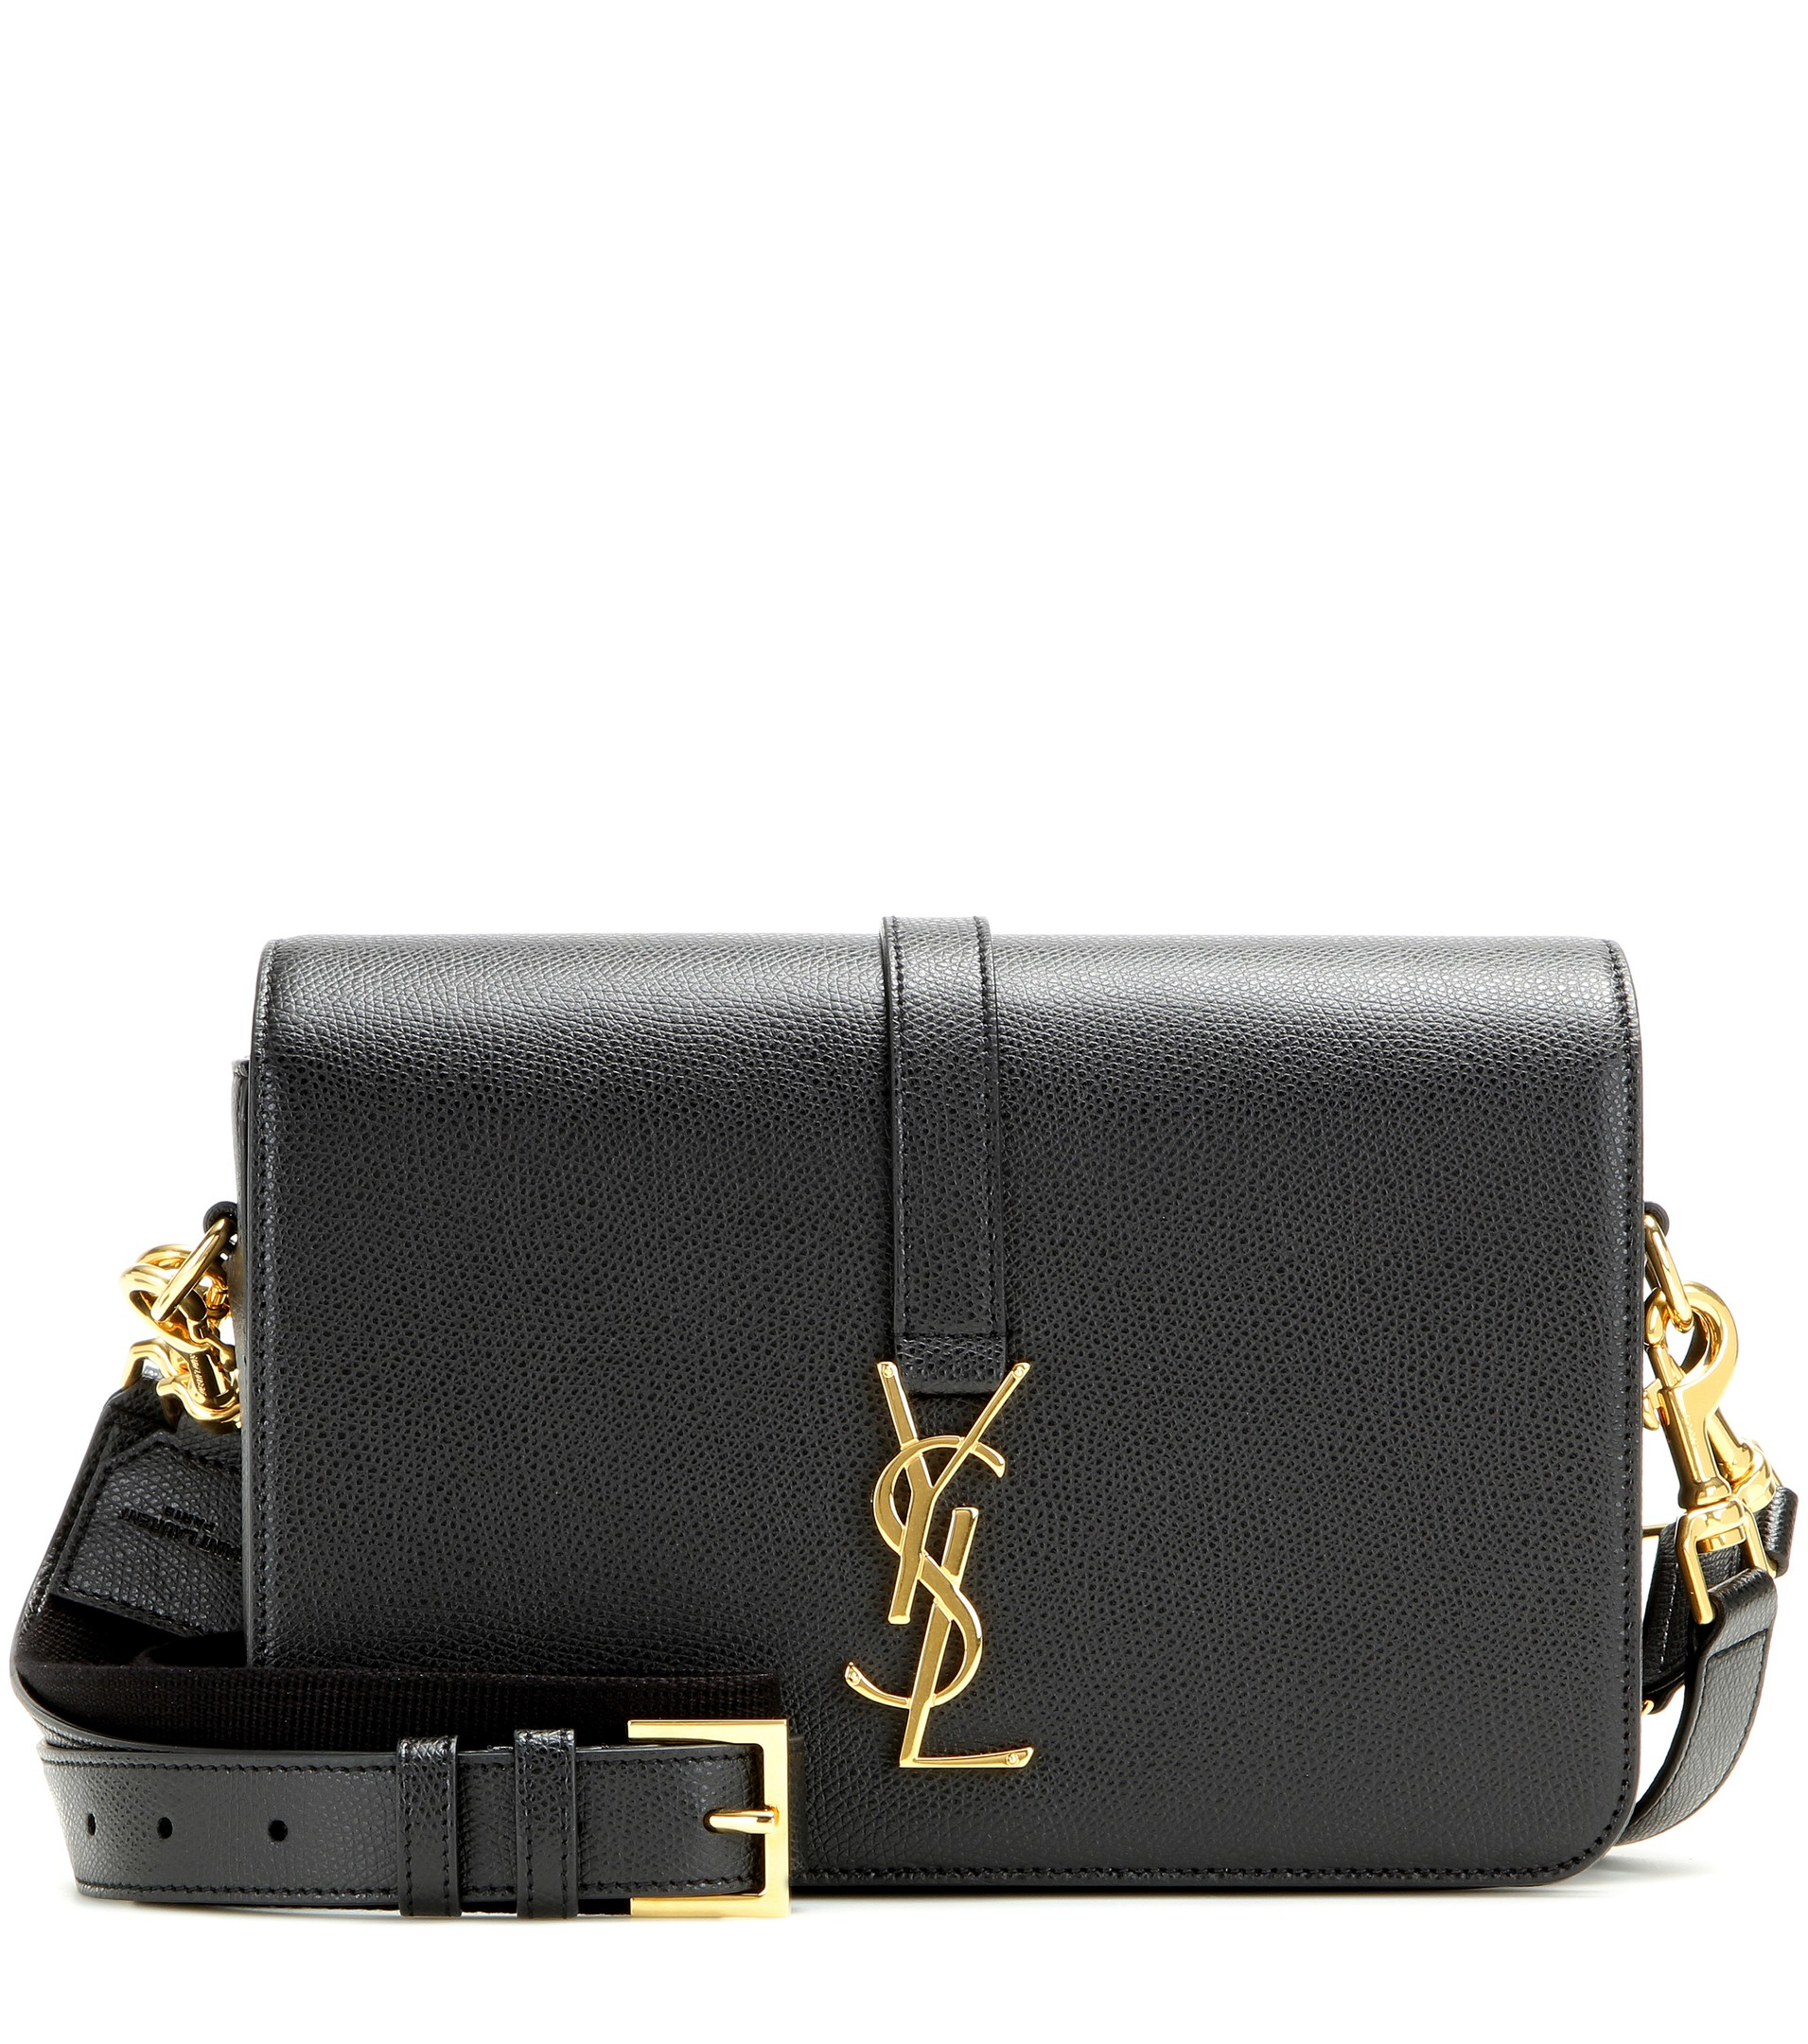 saint laurent monogram universit medium leather shoulder bag in black lyst. Black Bedroom Furniture Sets. Home Design Ideas